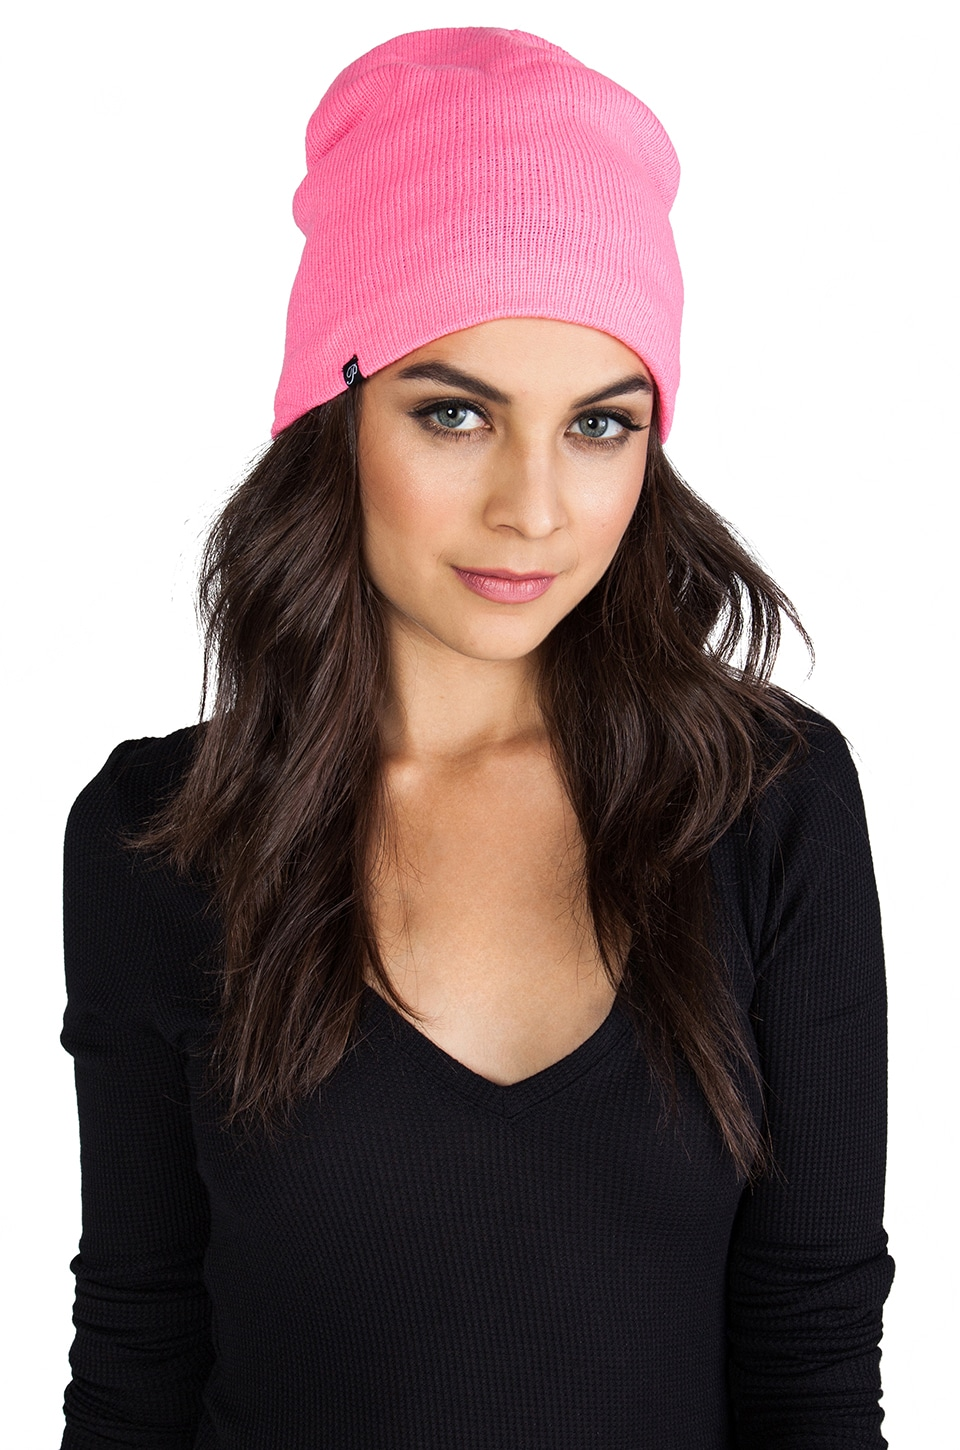 Plush Barca Slouch Beanie in Neon Pink